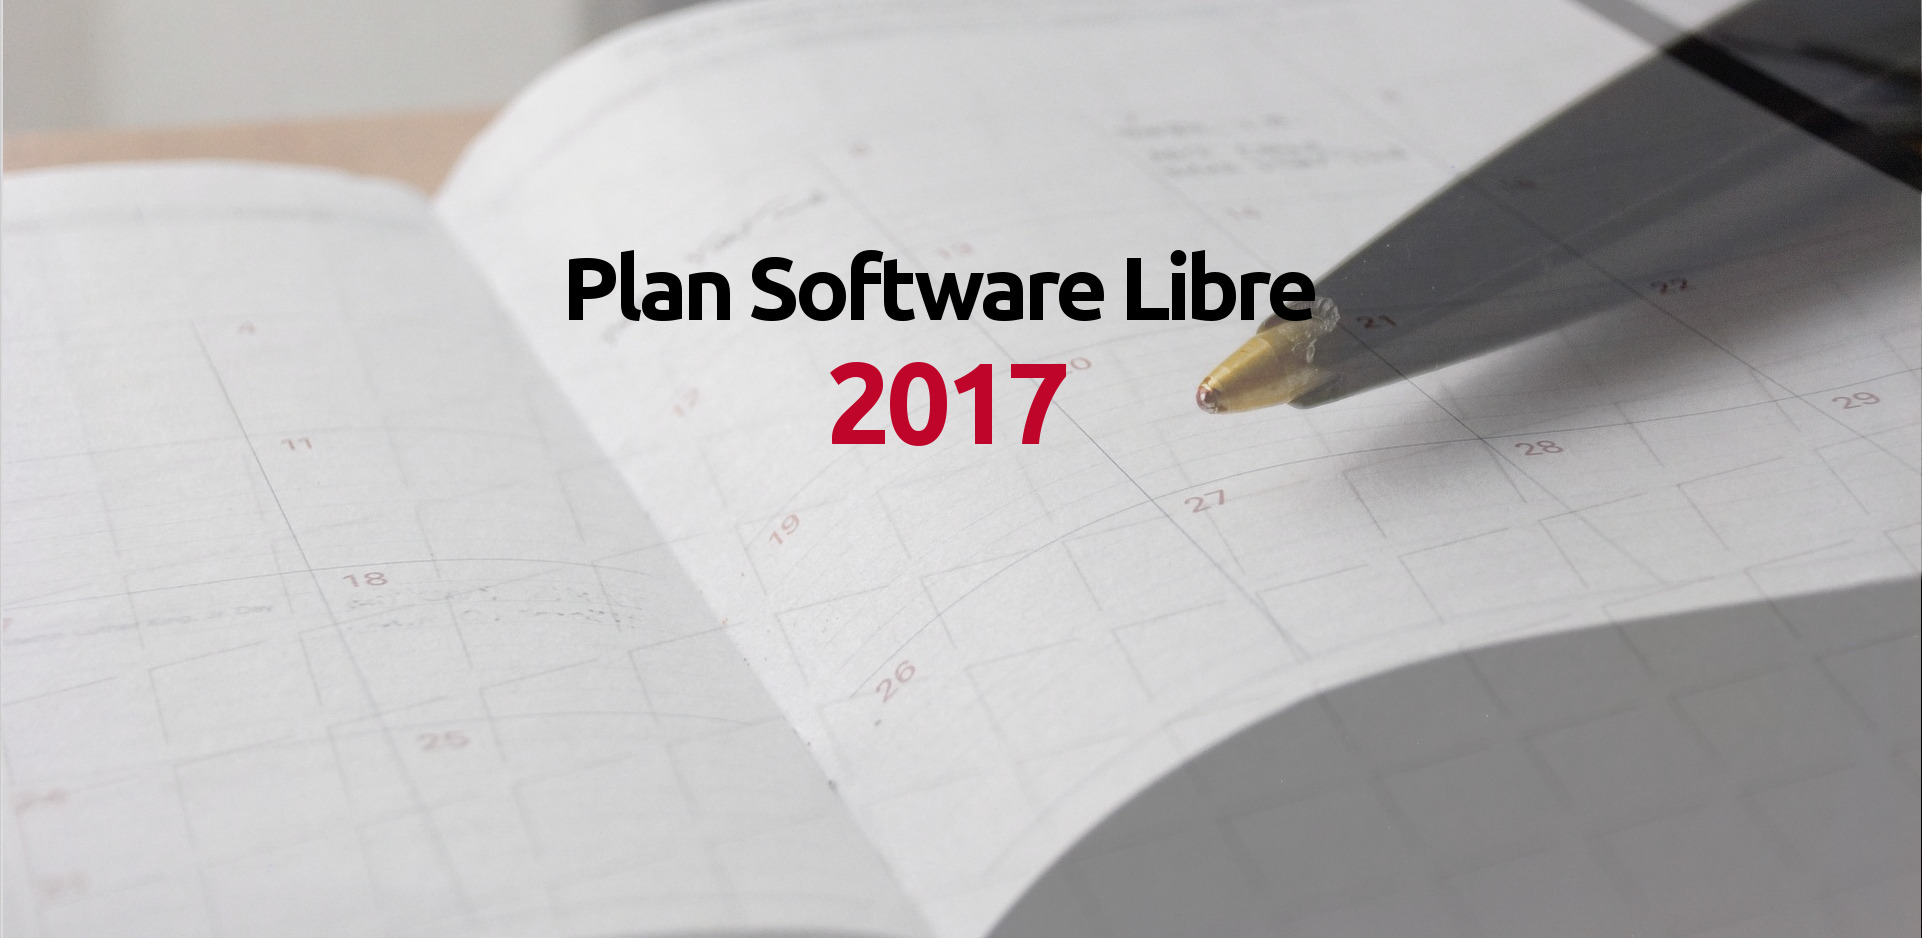 Plan de software libre 2017